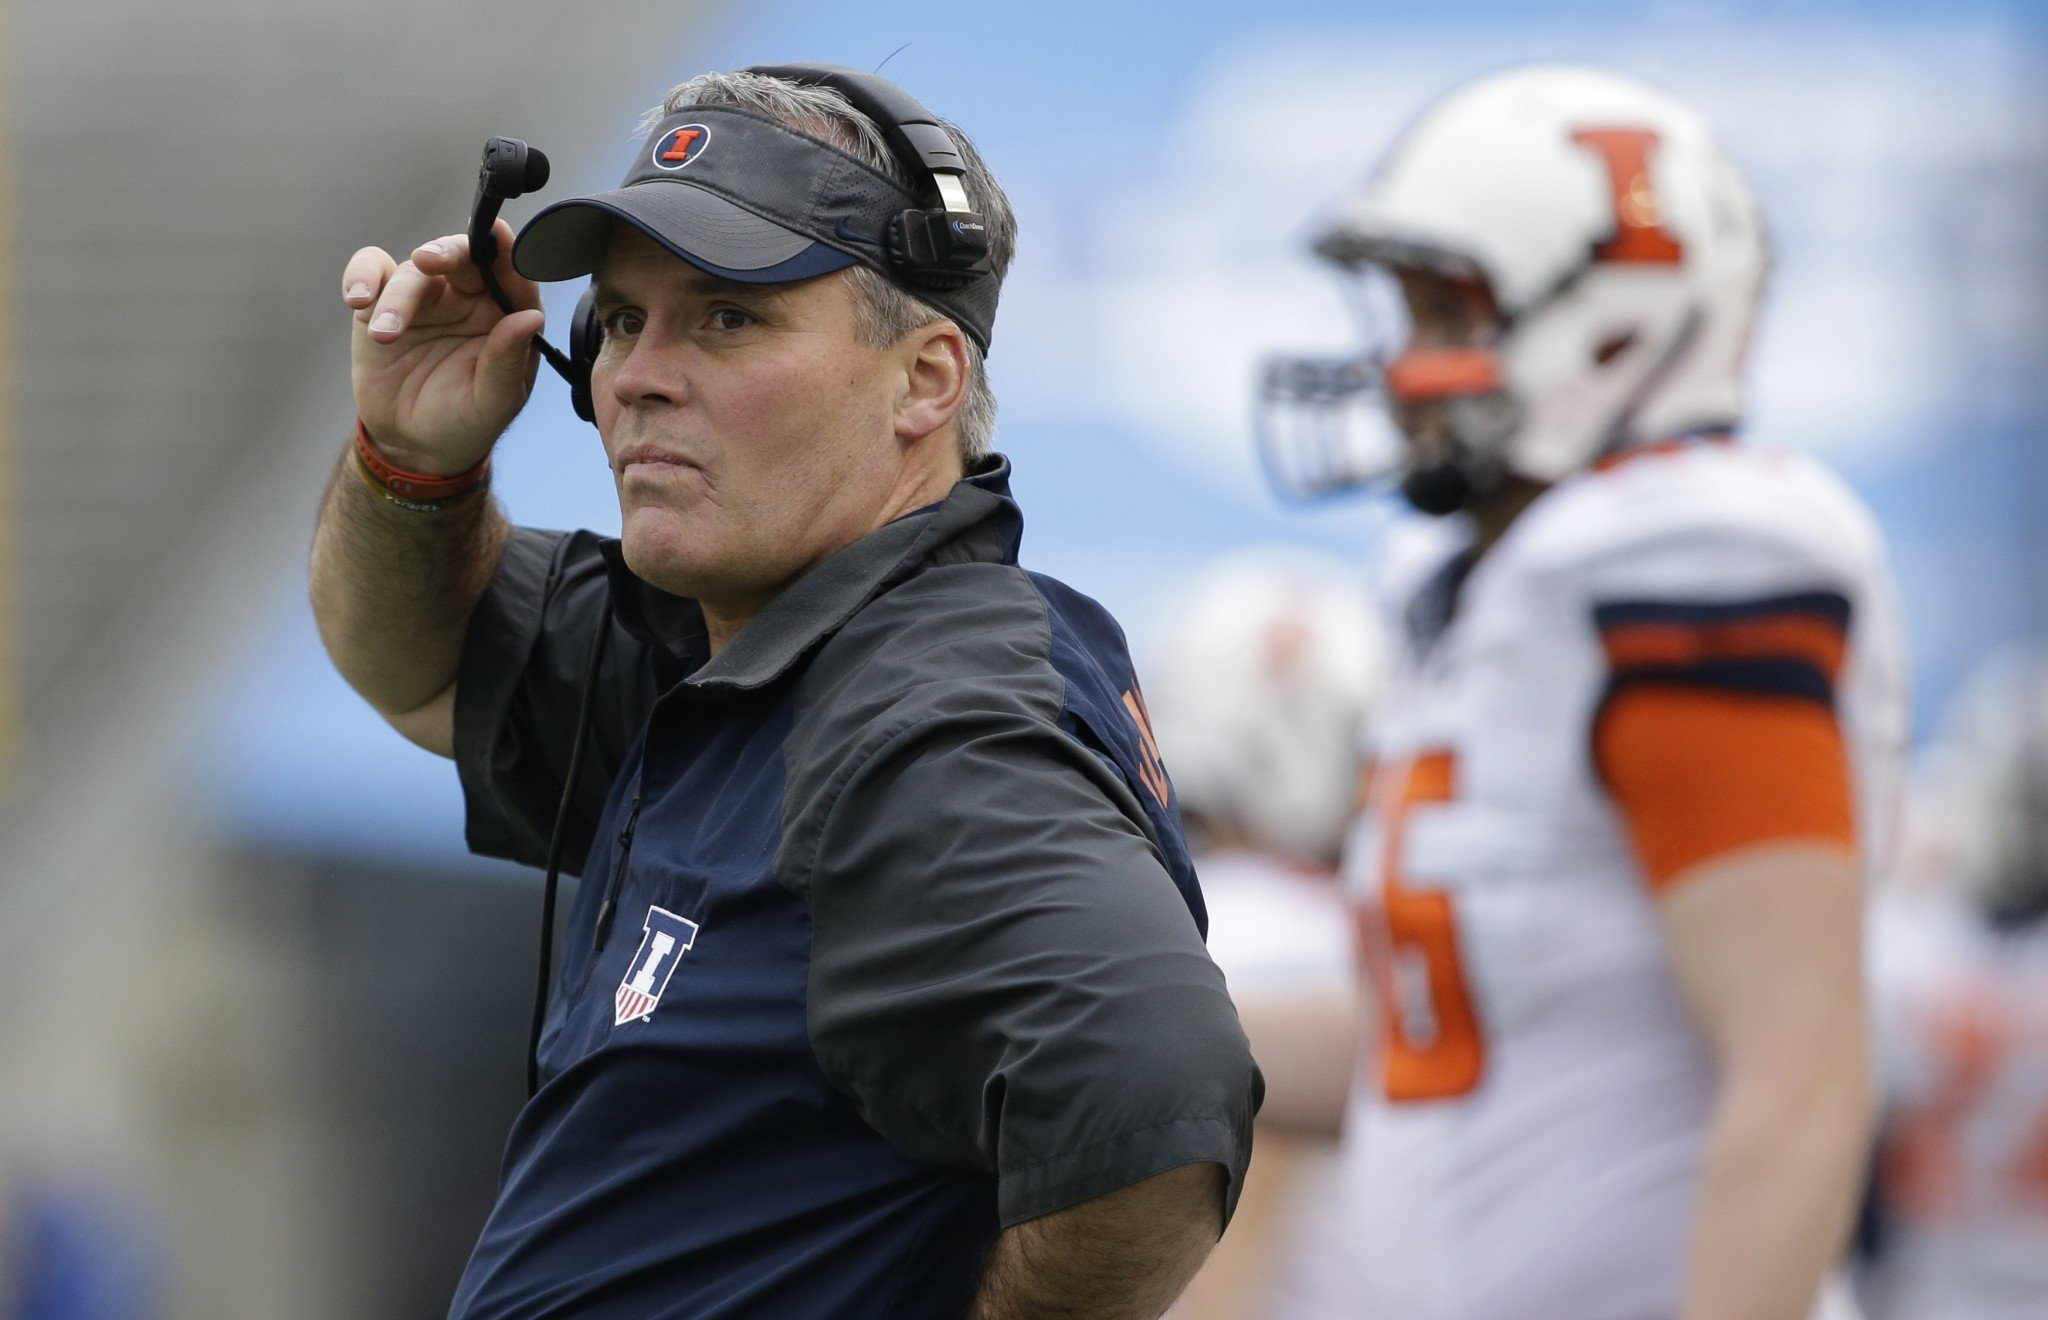 In this Dec. 26, 2014, file photo, former University of Illinois head coach Tim Beckman watches from the sidelines during an NCAA college football game in Dallas. (AP Photo/LM Otero, File)